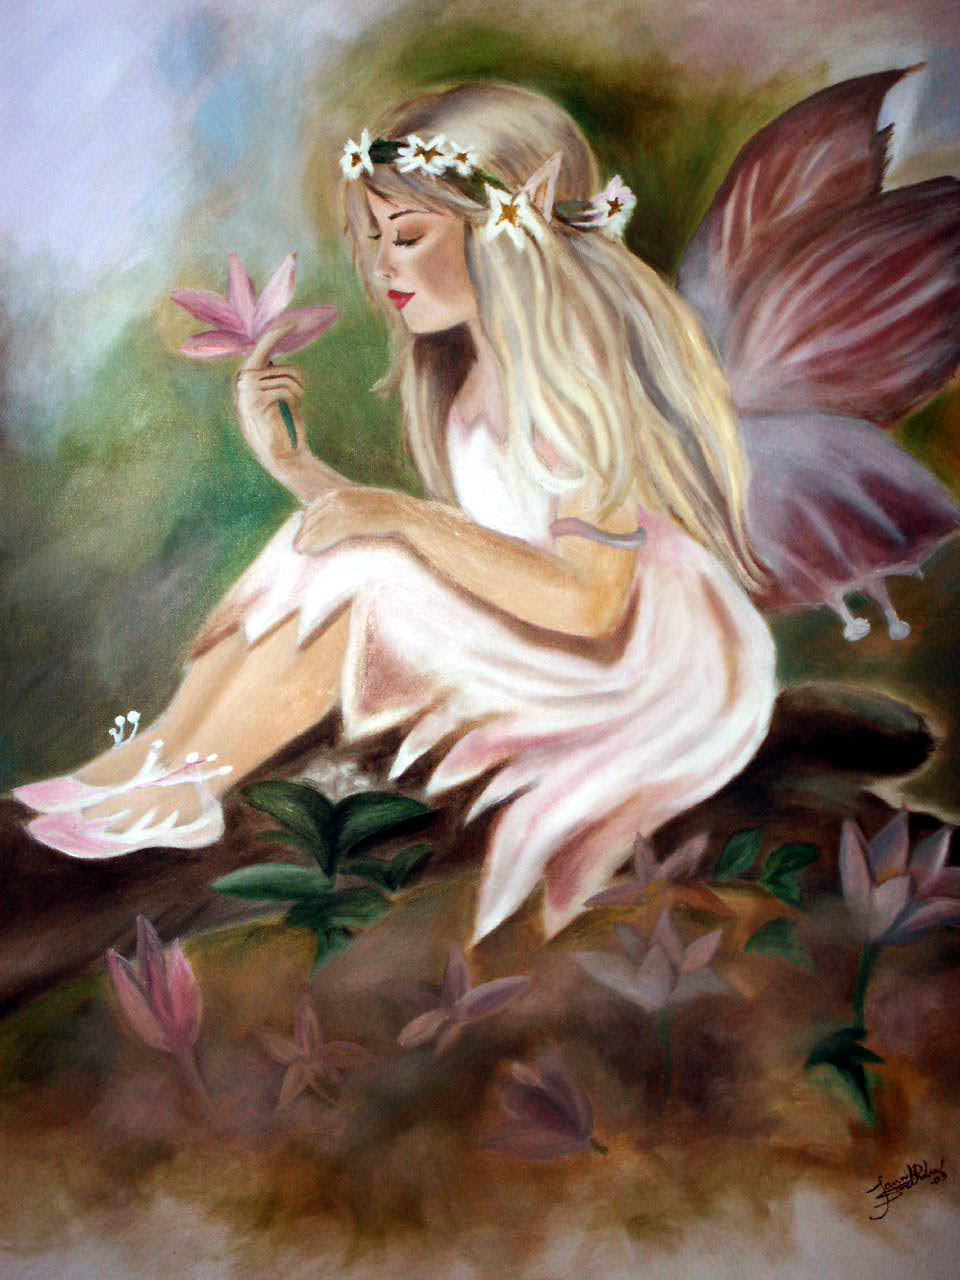 fairies movies images - photo #6